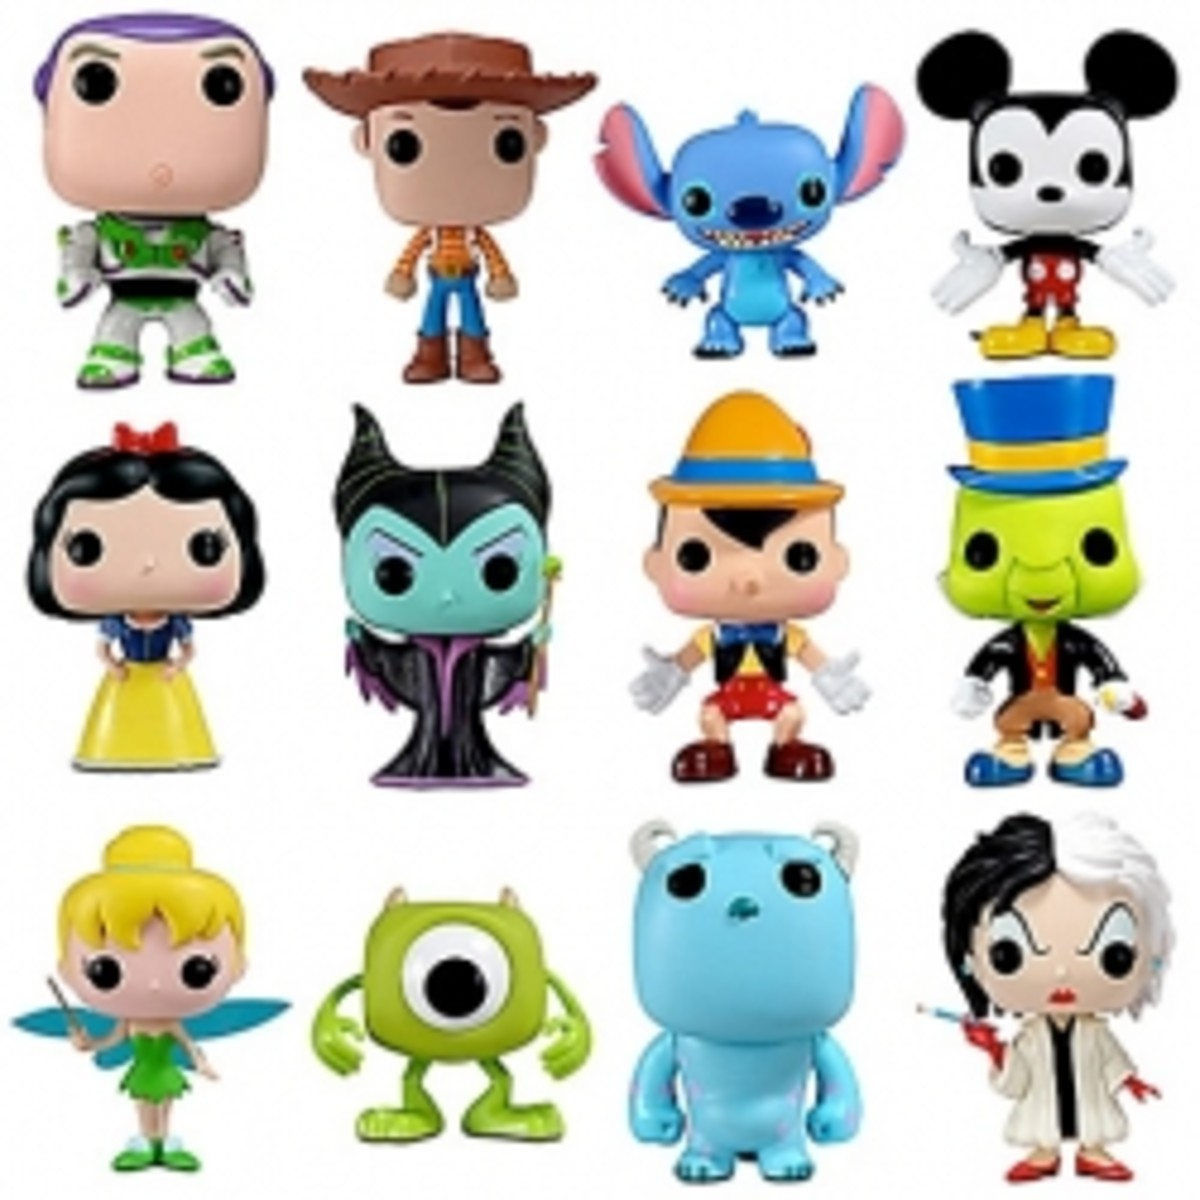 Set of Disney Pop Series 1